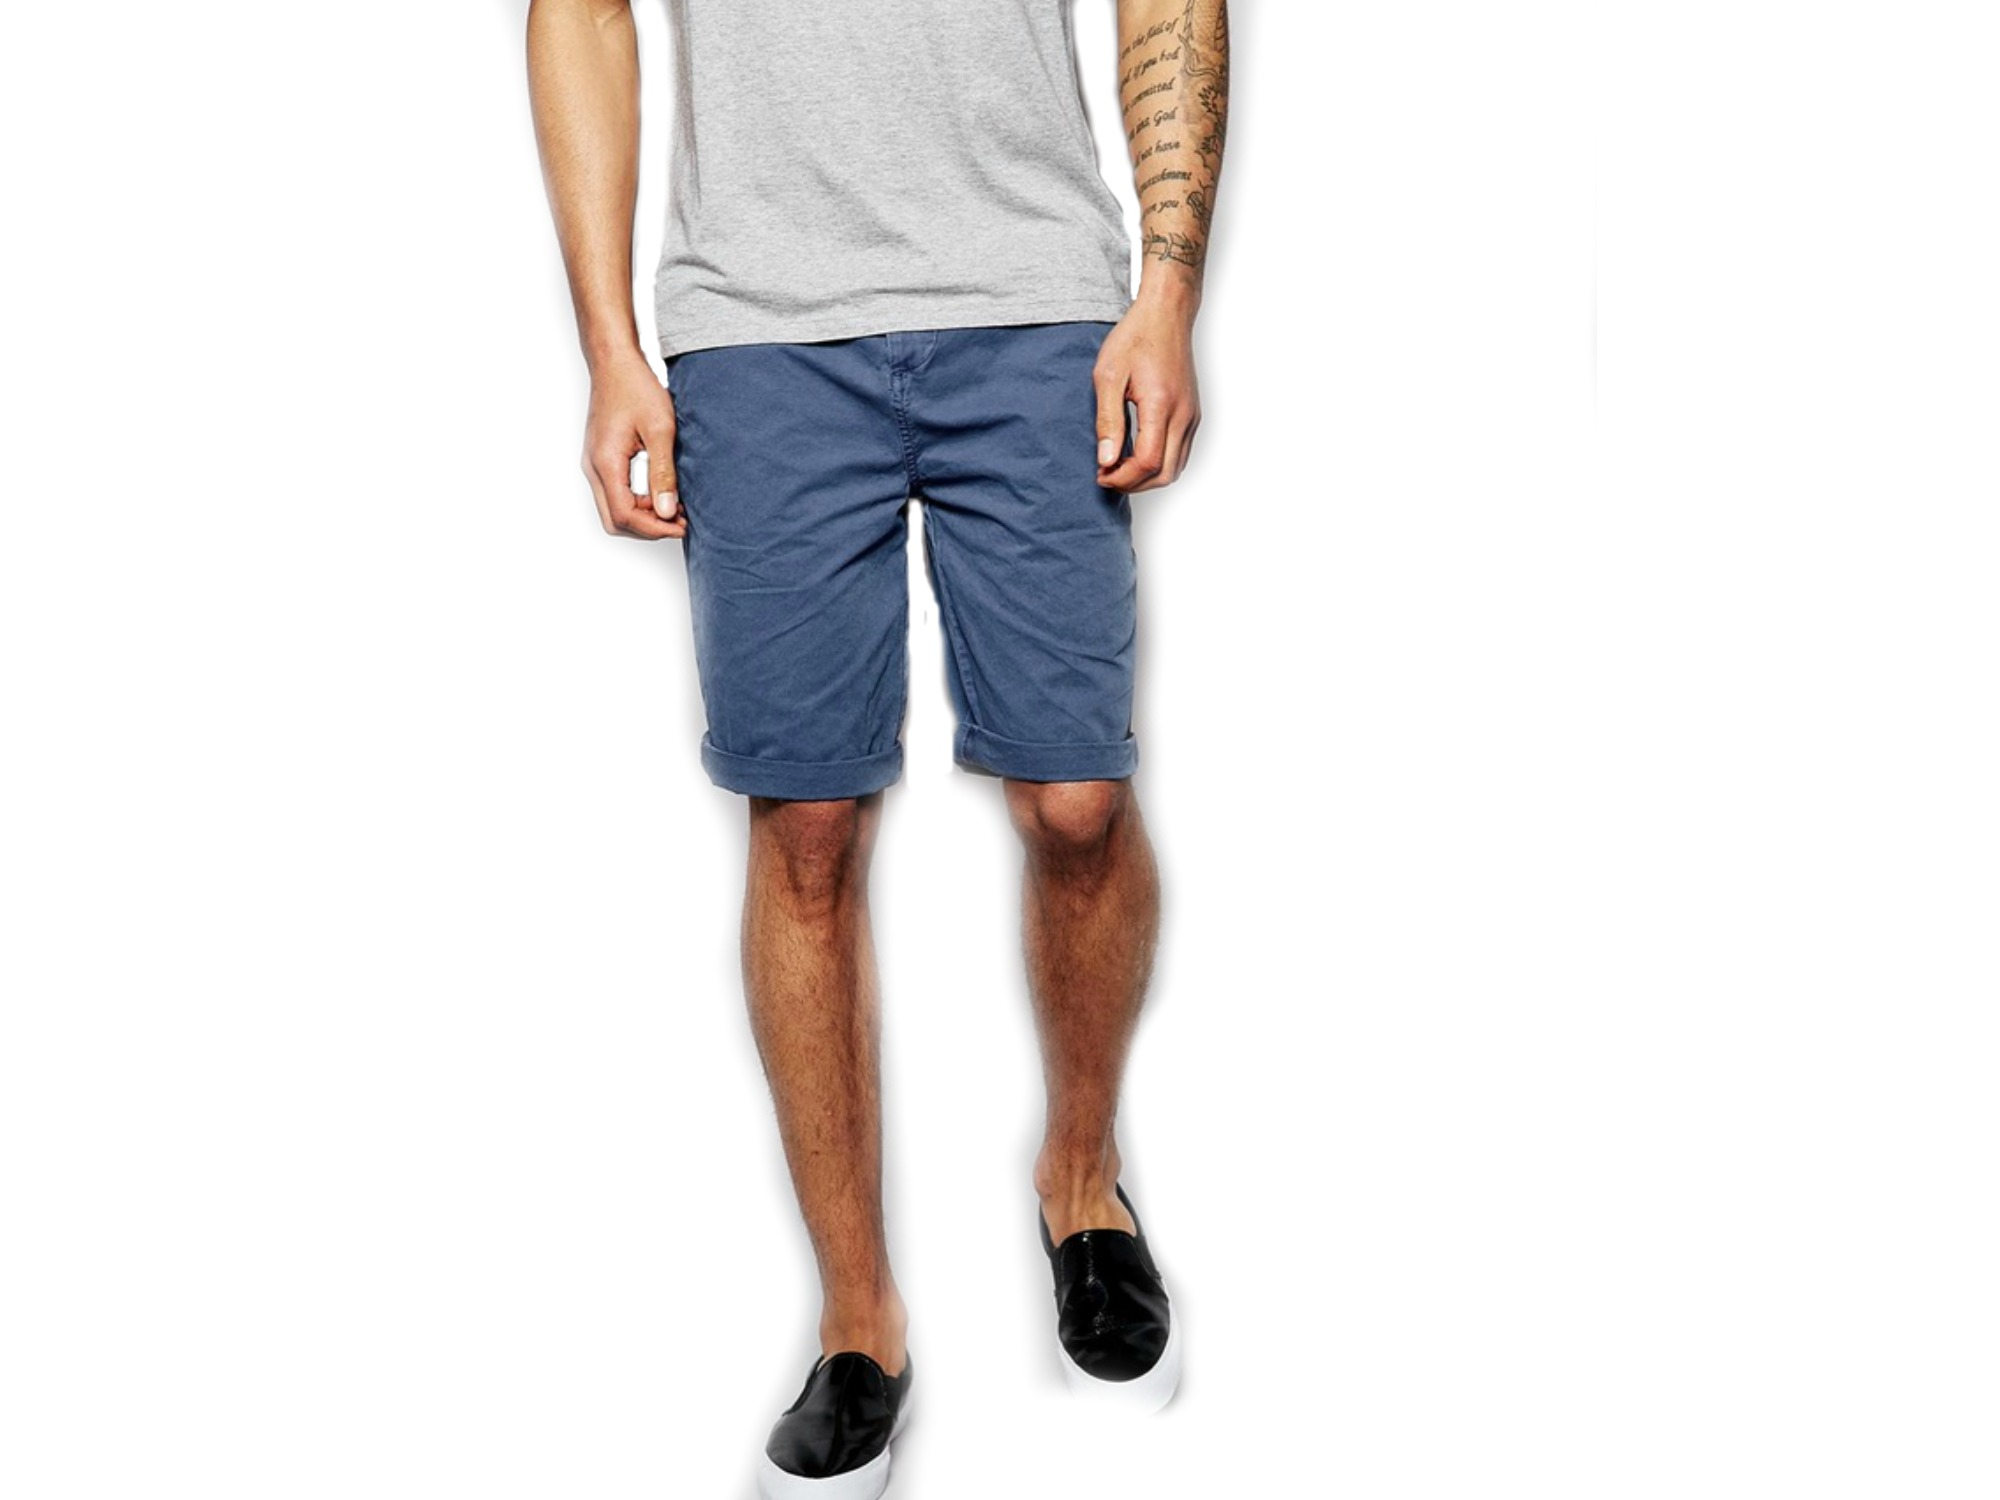 ASOS Brand Chino Shorts Longer Length with Belt